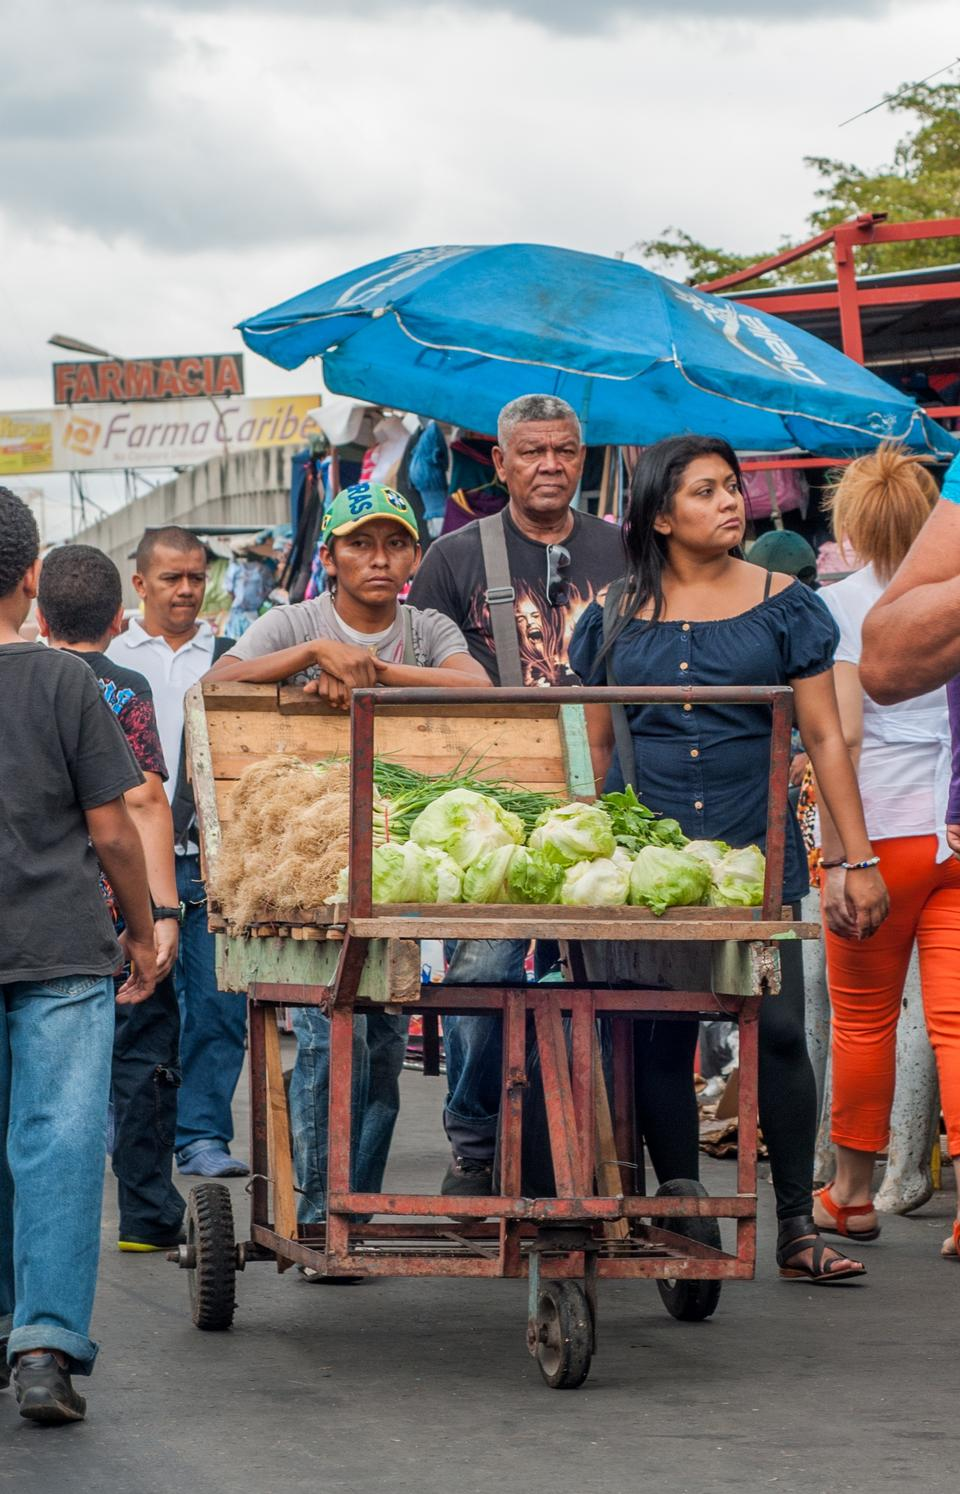 Free street sellers of food to supply